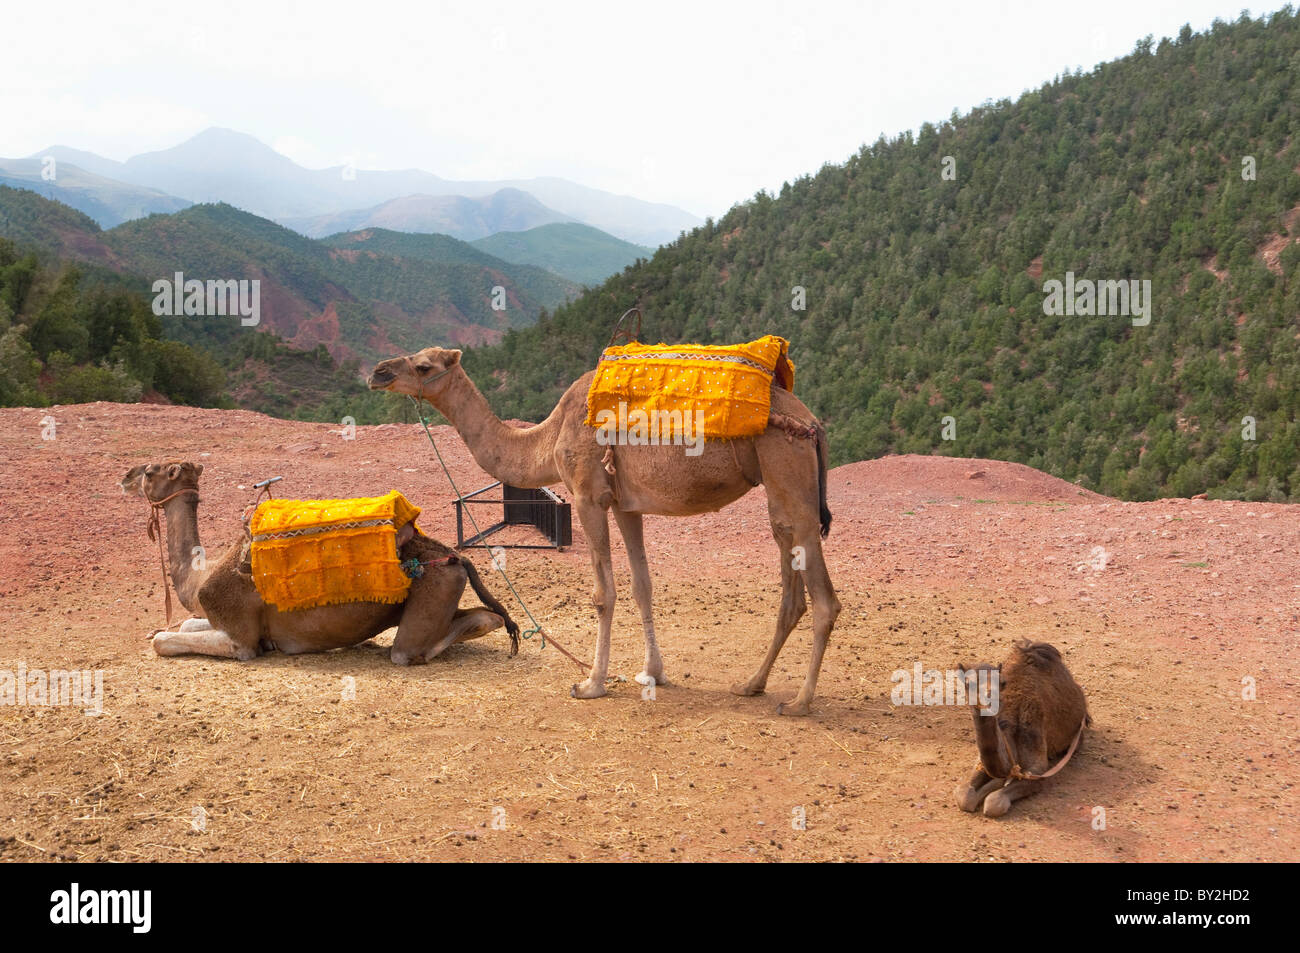 Camels at roadside viewpoint in the Ourika Valley, Morocco. - Stock Image